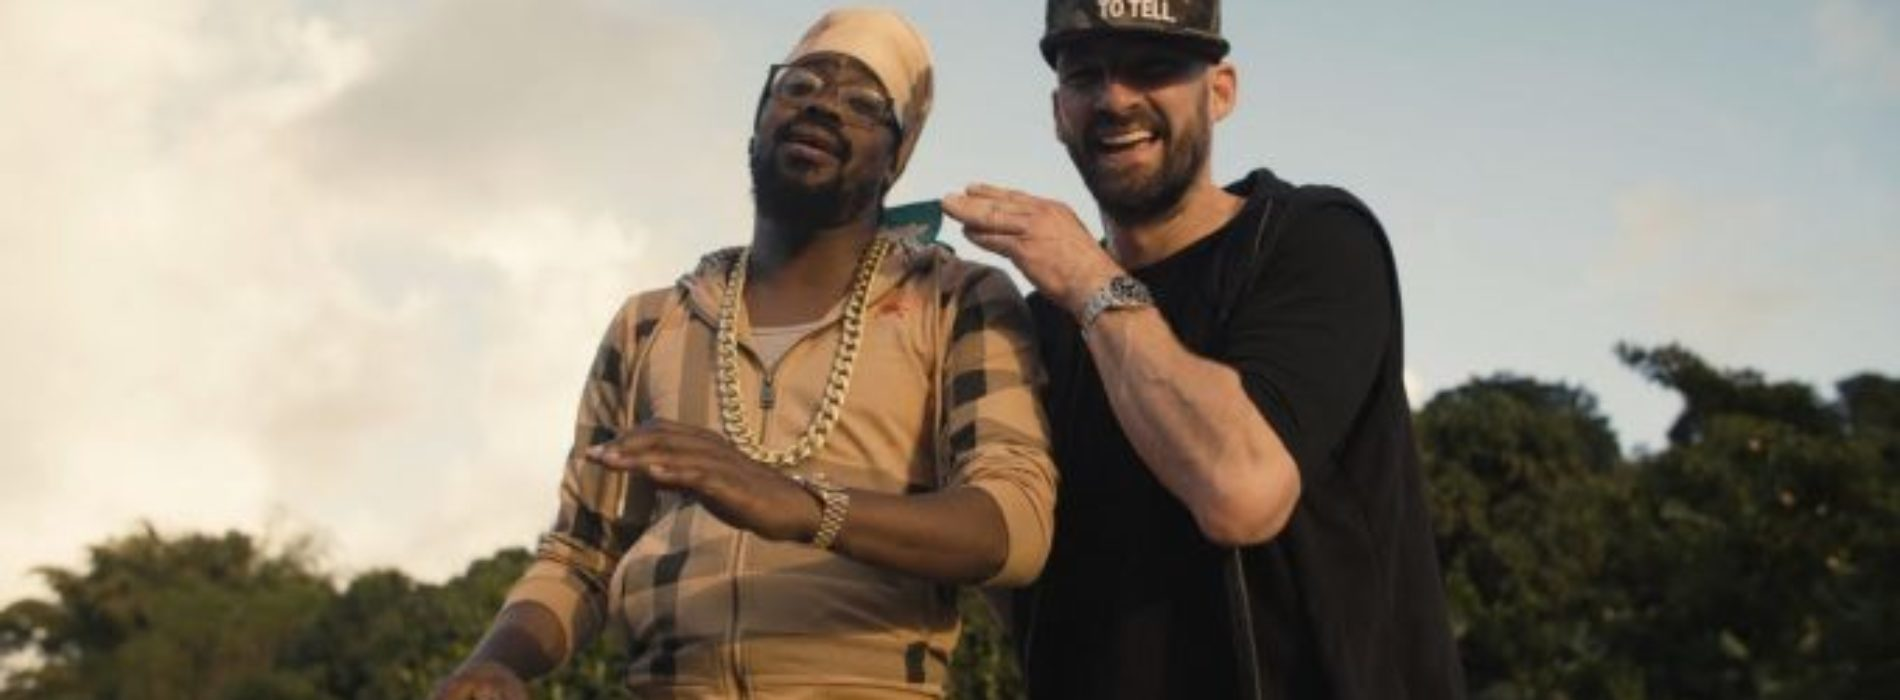 Gentleman & Beenie Man – Still Around [Official Video] – Janvier 2019